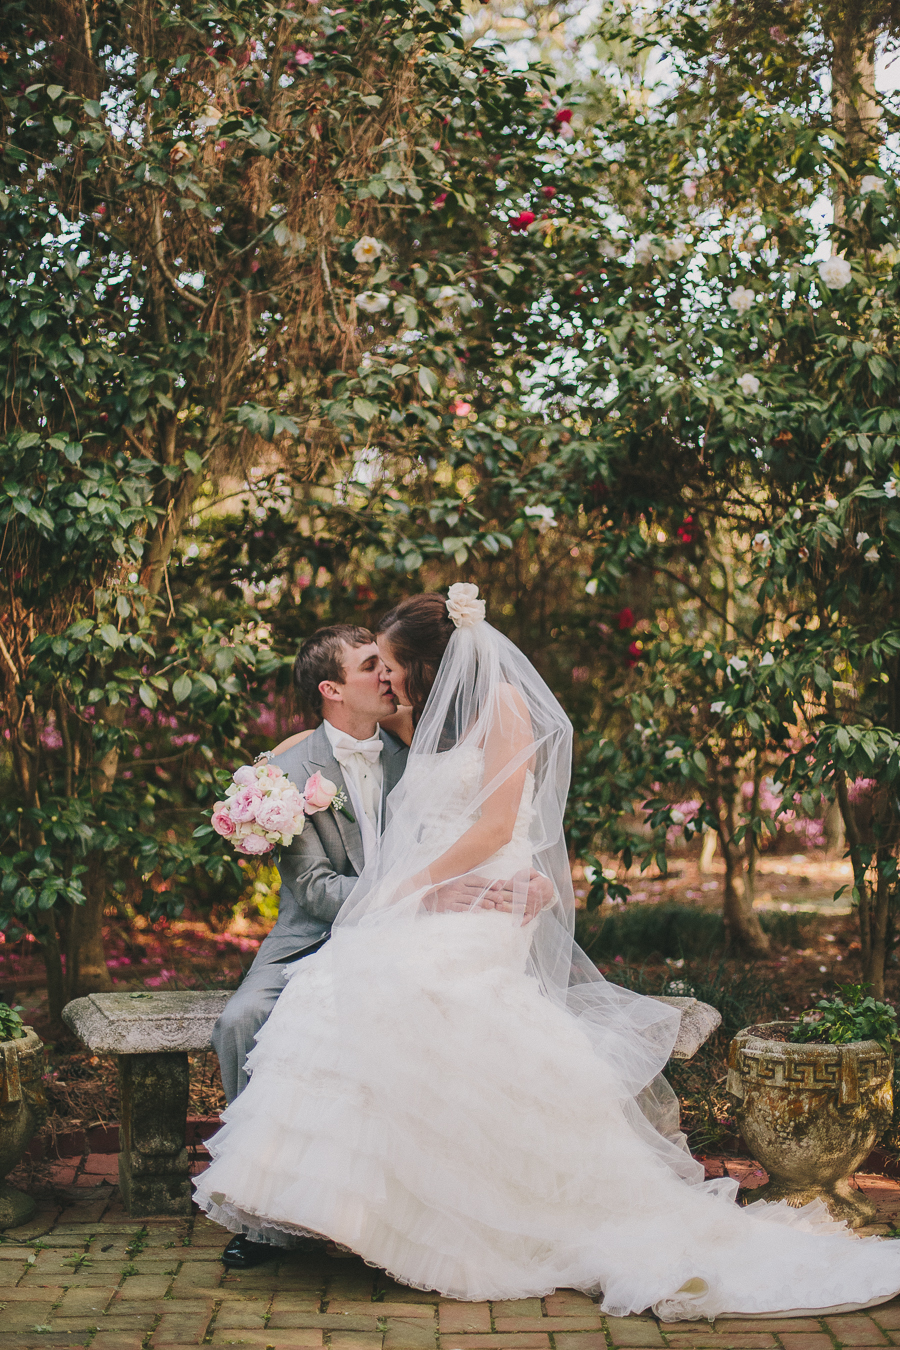 wedding, bride, bridal, details, kiss, married, love, delicate, fort valley, georgia, groom, photography, fort valley, massee lane, garden, georgia, macon, wedding photography